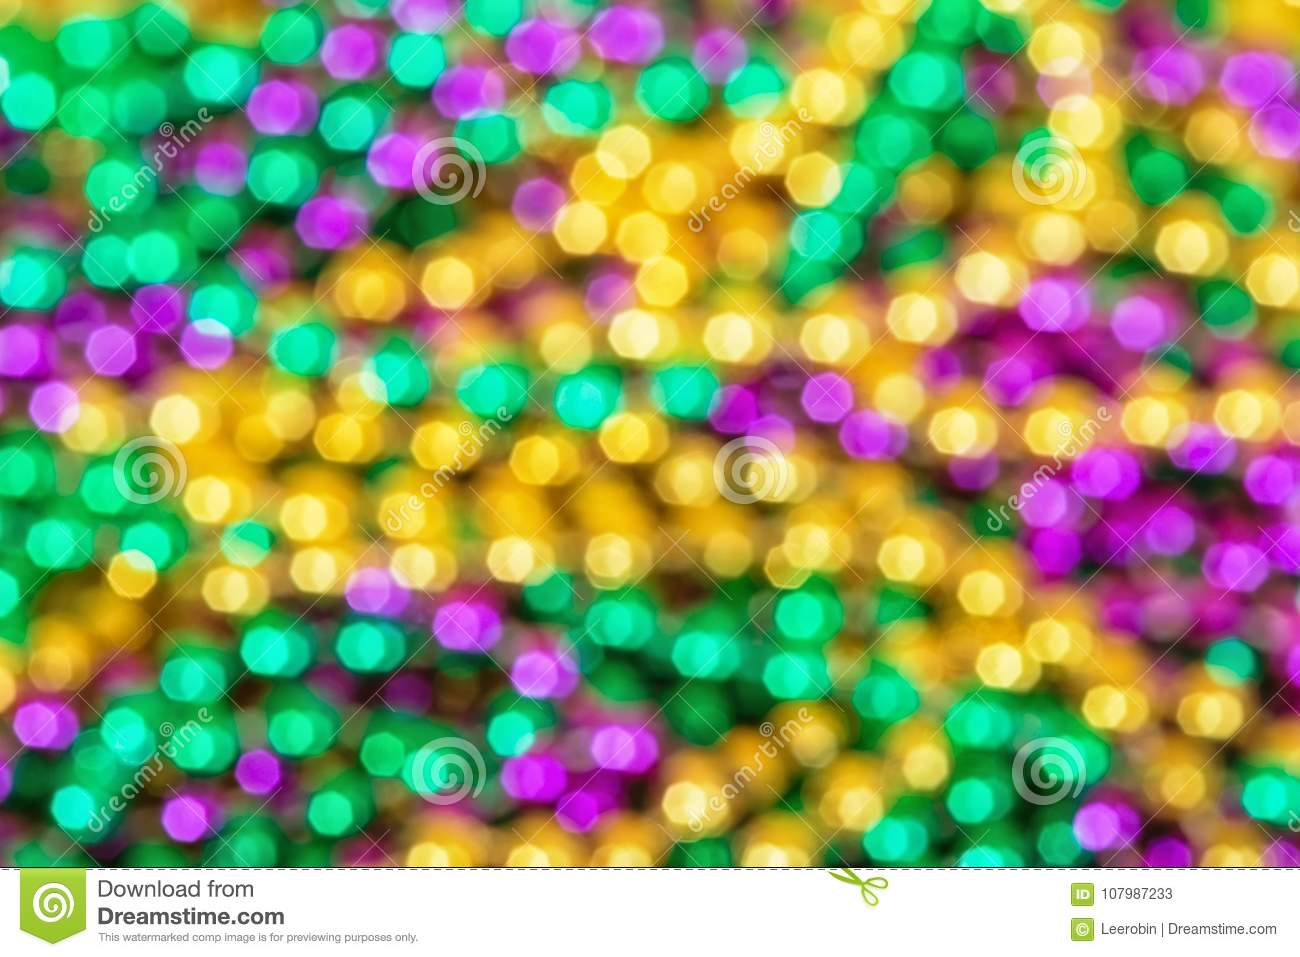 Out of focus background of colorful Mardi Gras beads